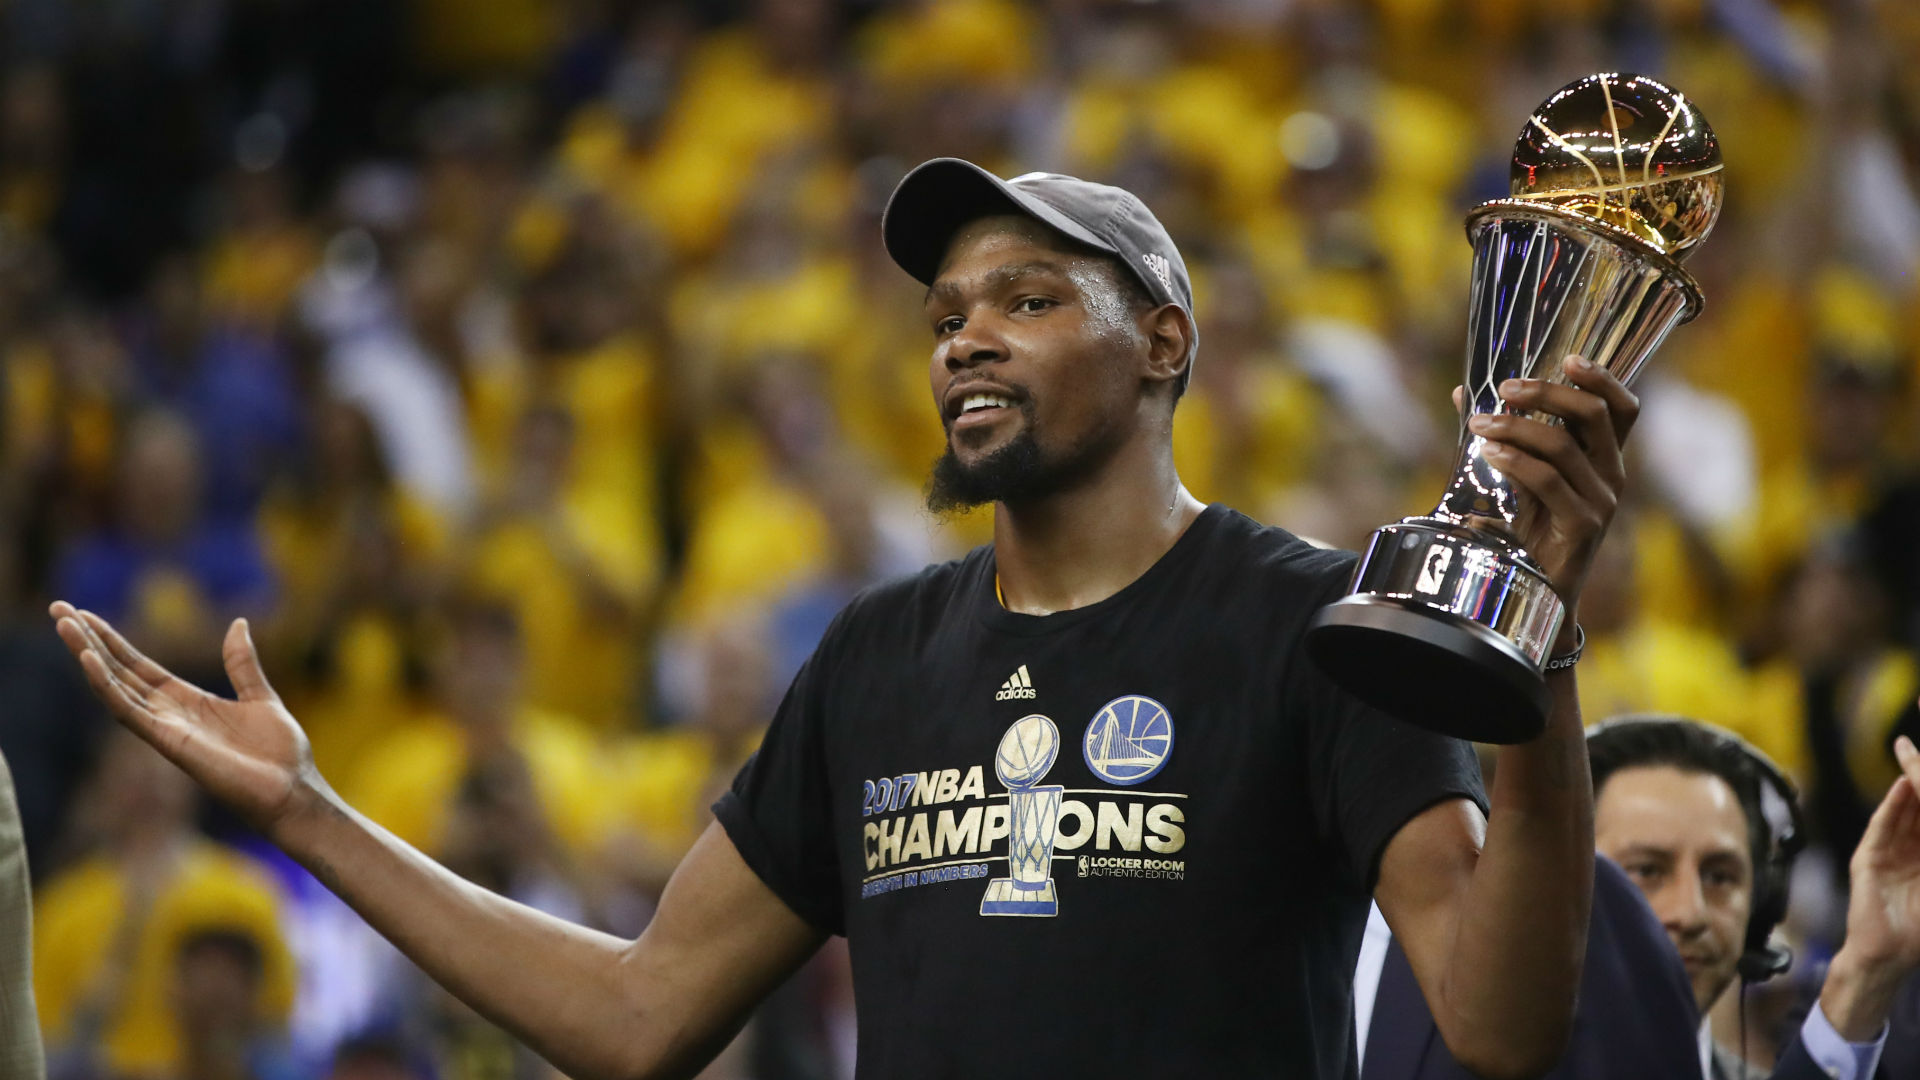 Warriors forward Kevin Durant wins 2017 NBA Finals MVP award